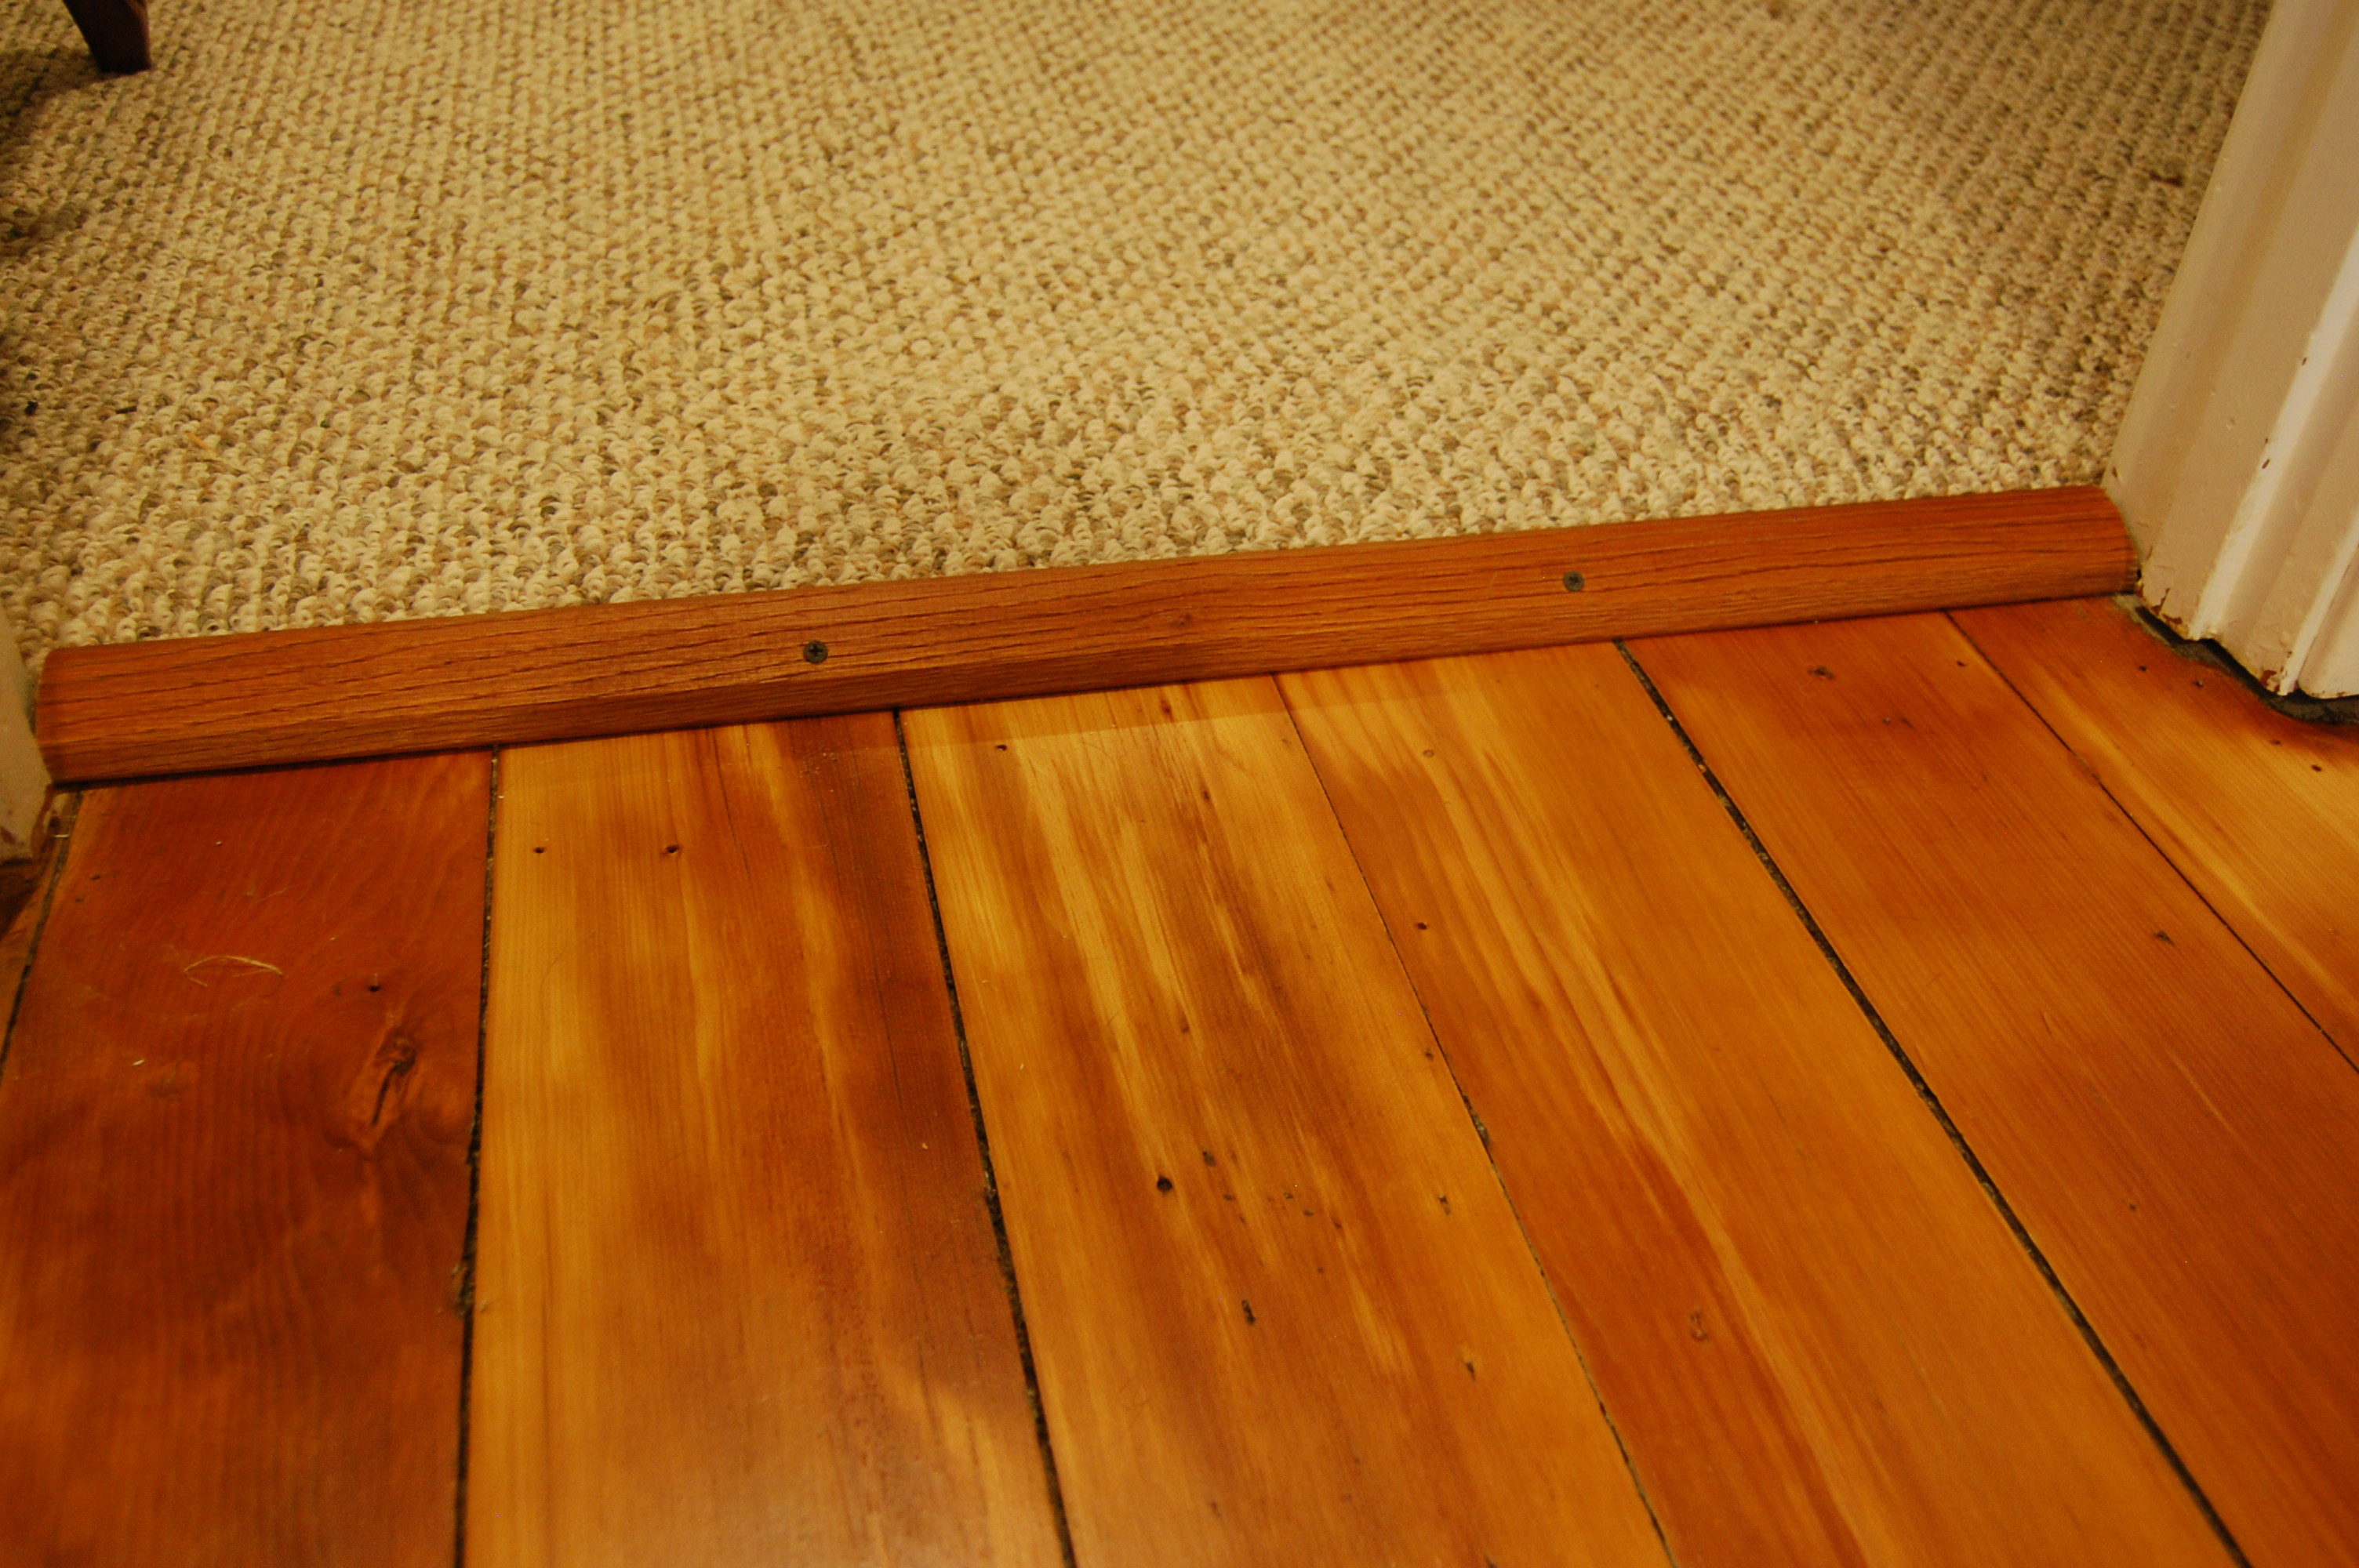 Wood floor carpet srs transition carpet vidalondon for Hardwood floors uneven